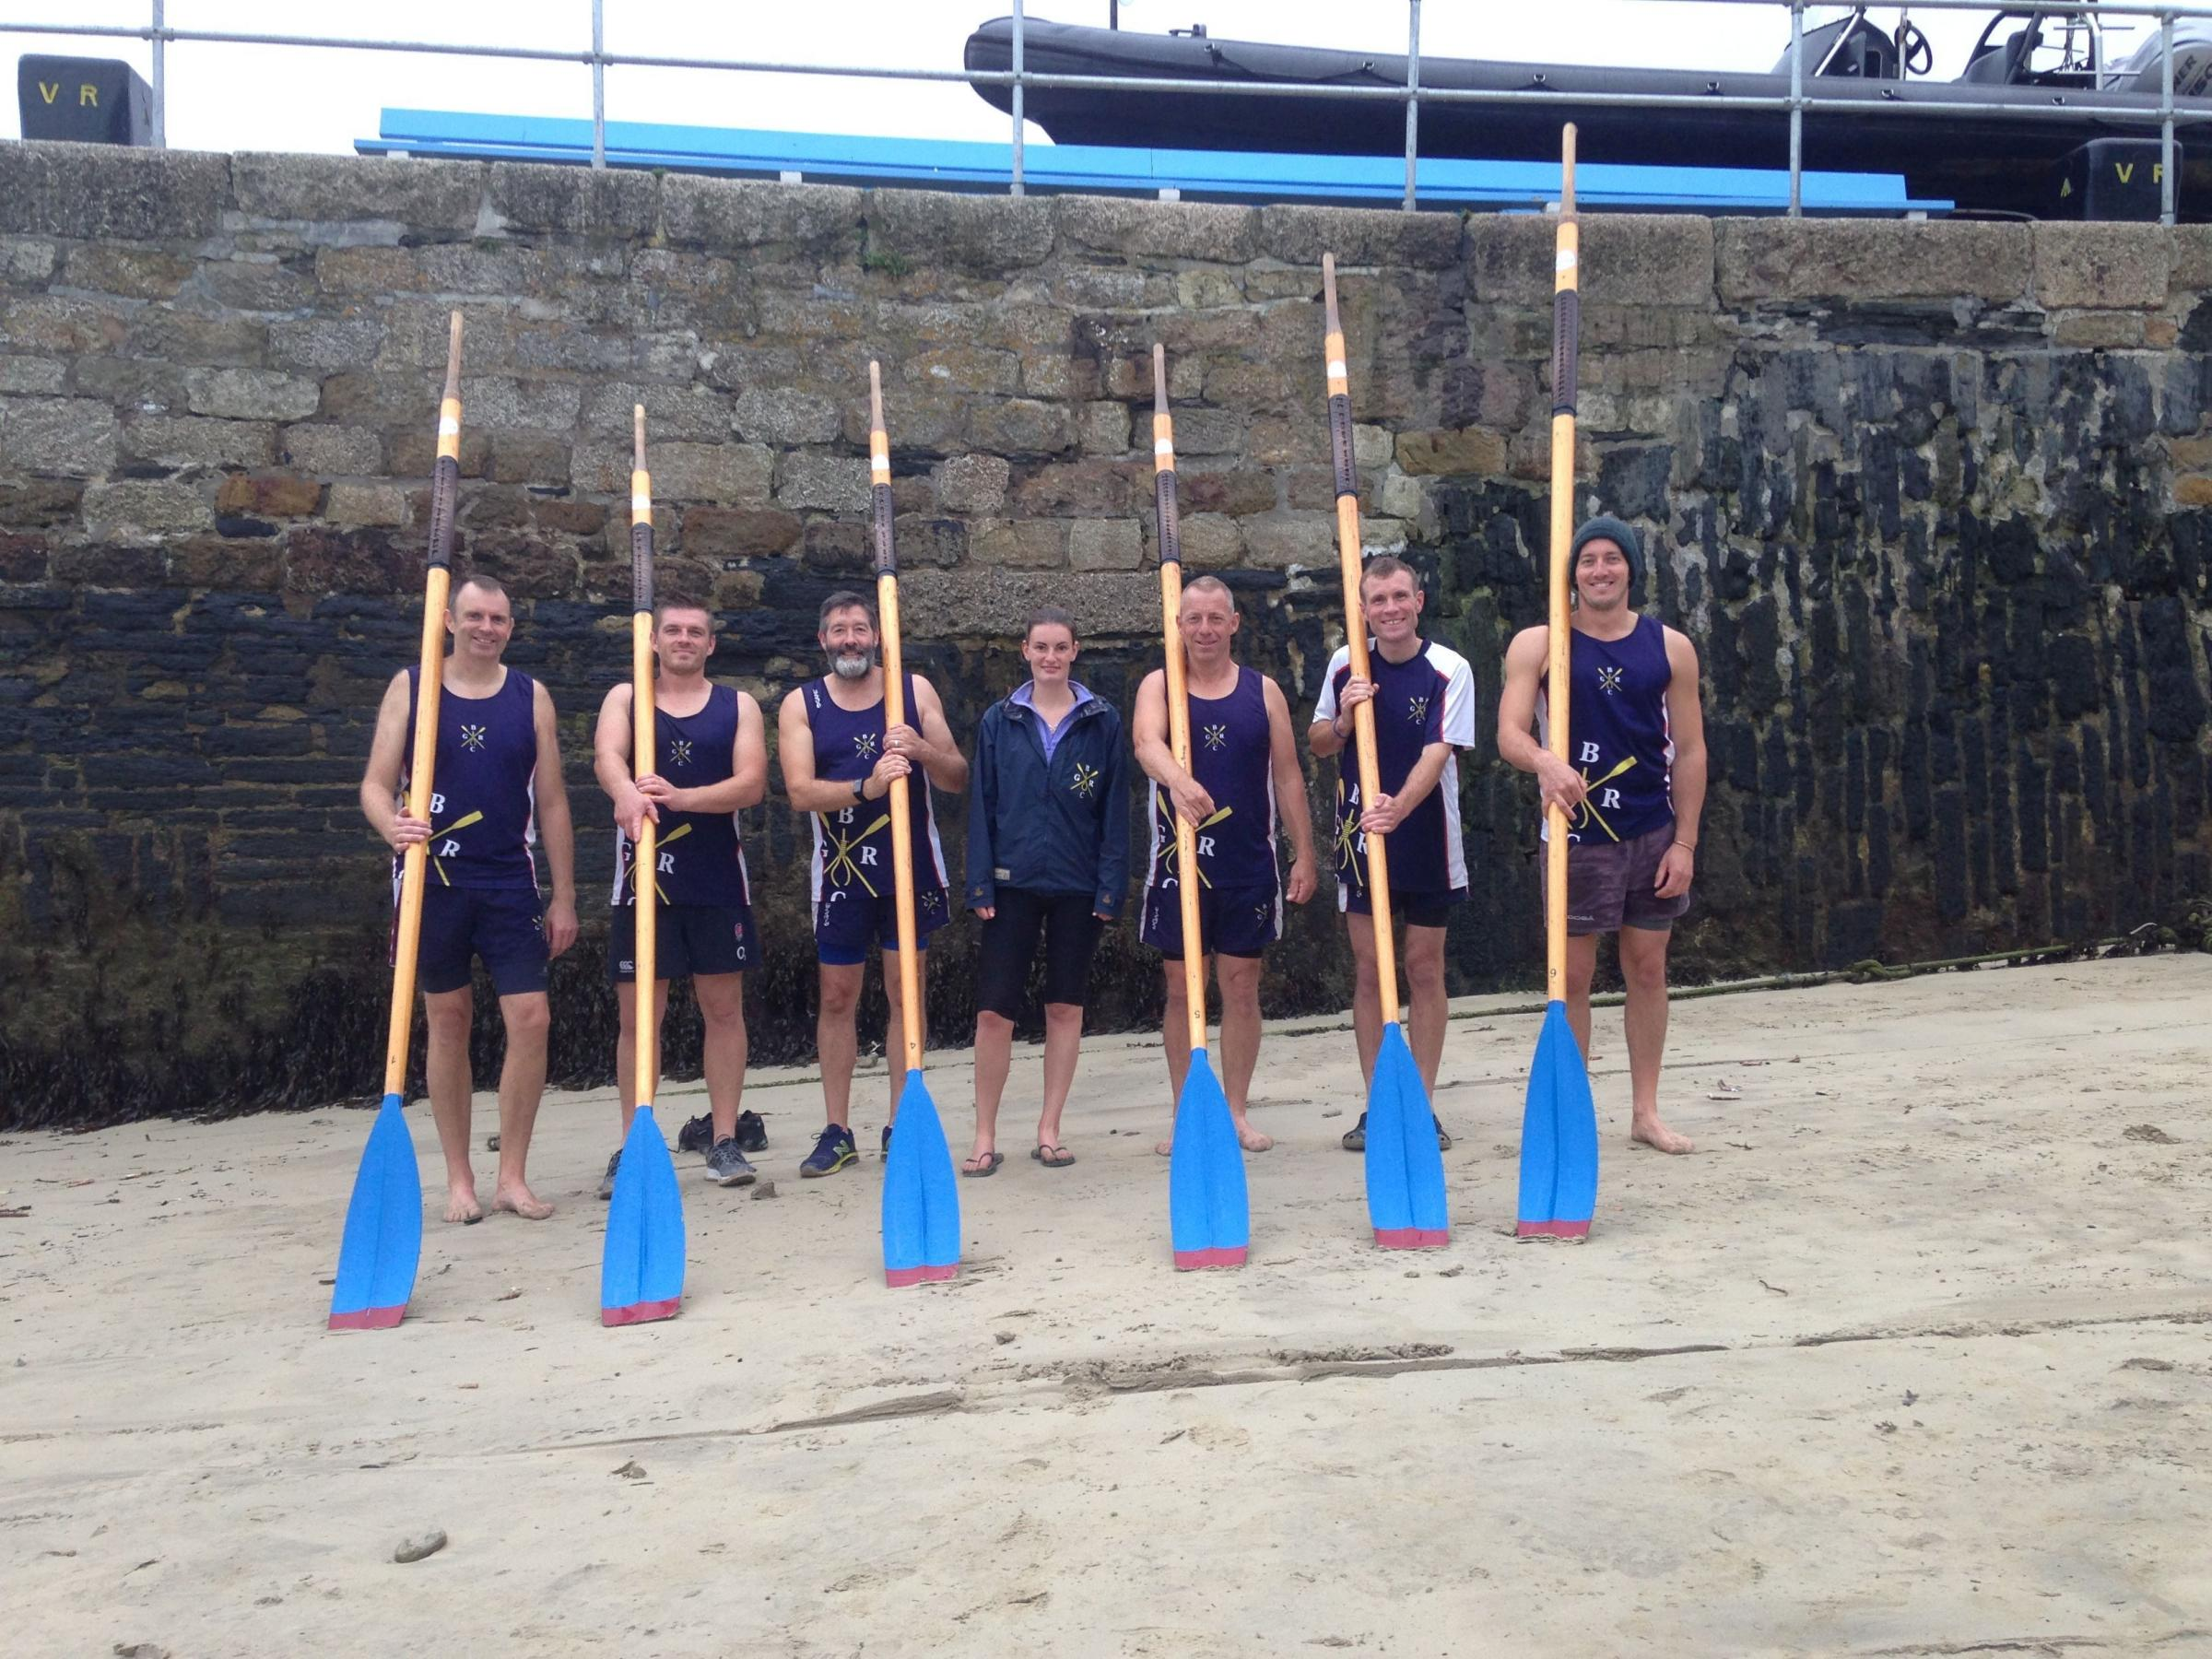 OARS UP: Bridport men's A crew, left to right: Stephen Goodman, Tom Woodhouse, Paul Skillend, cox Gemma Smith, Kevin Batchelor, Ash Raison and Lewis Webster.Please credit Tom Ramsden